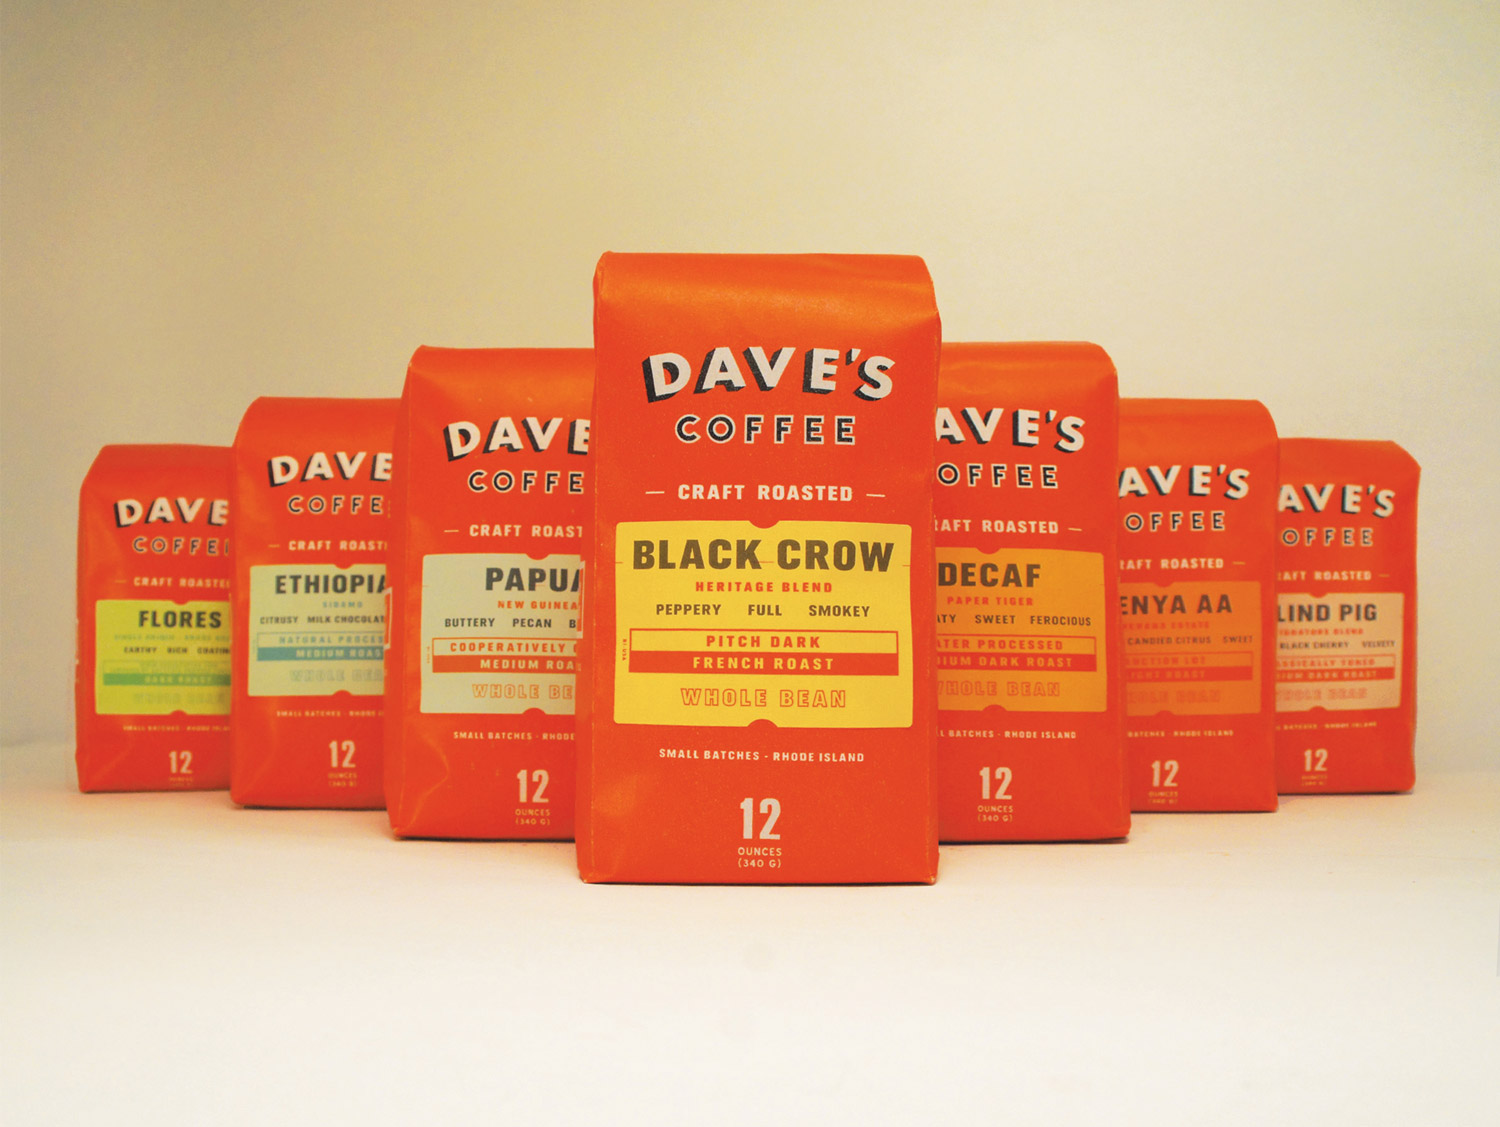 Daves-Coffee-Packaging-001.jpg